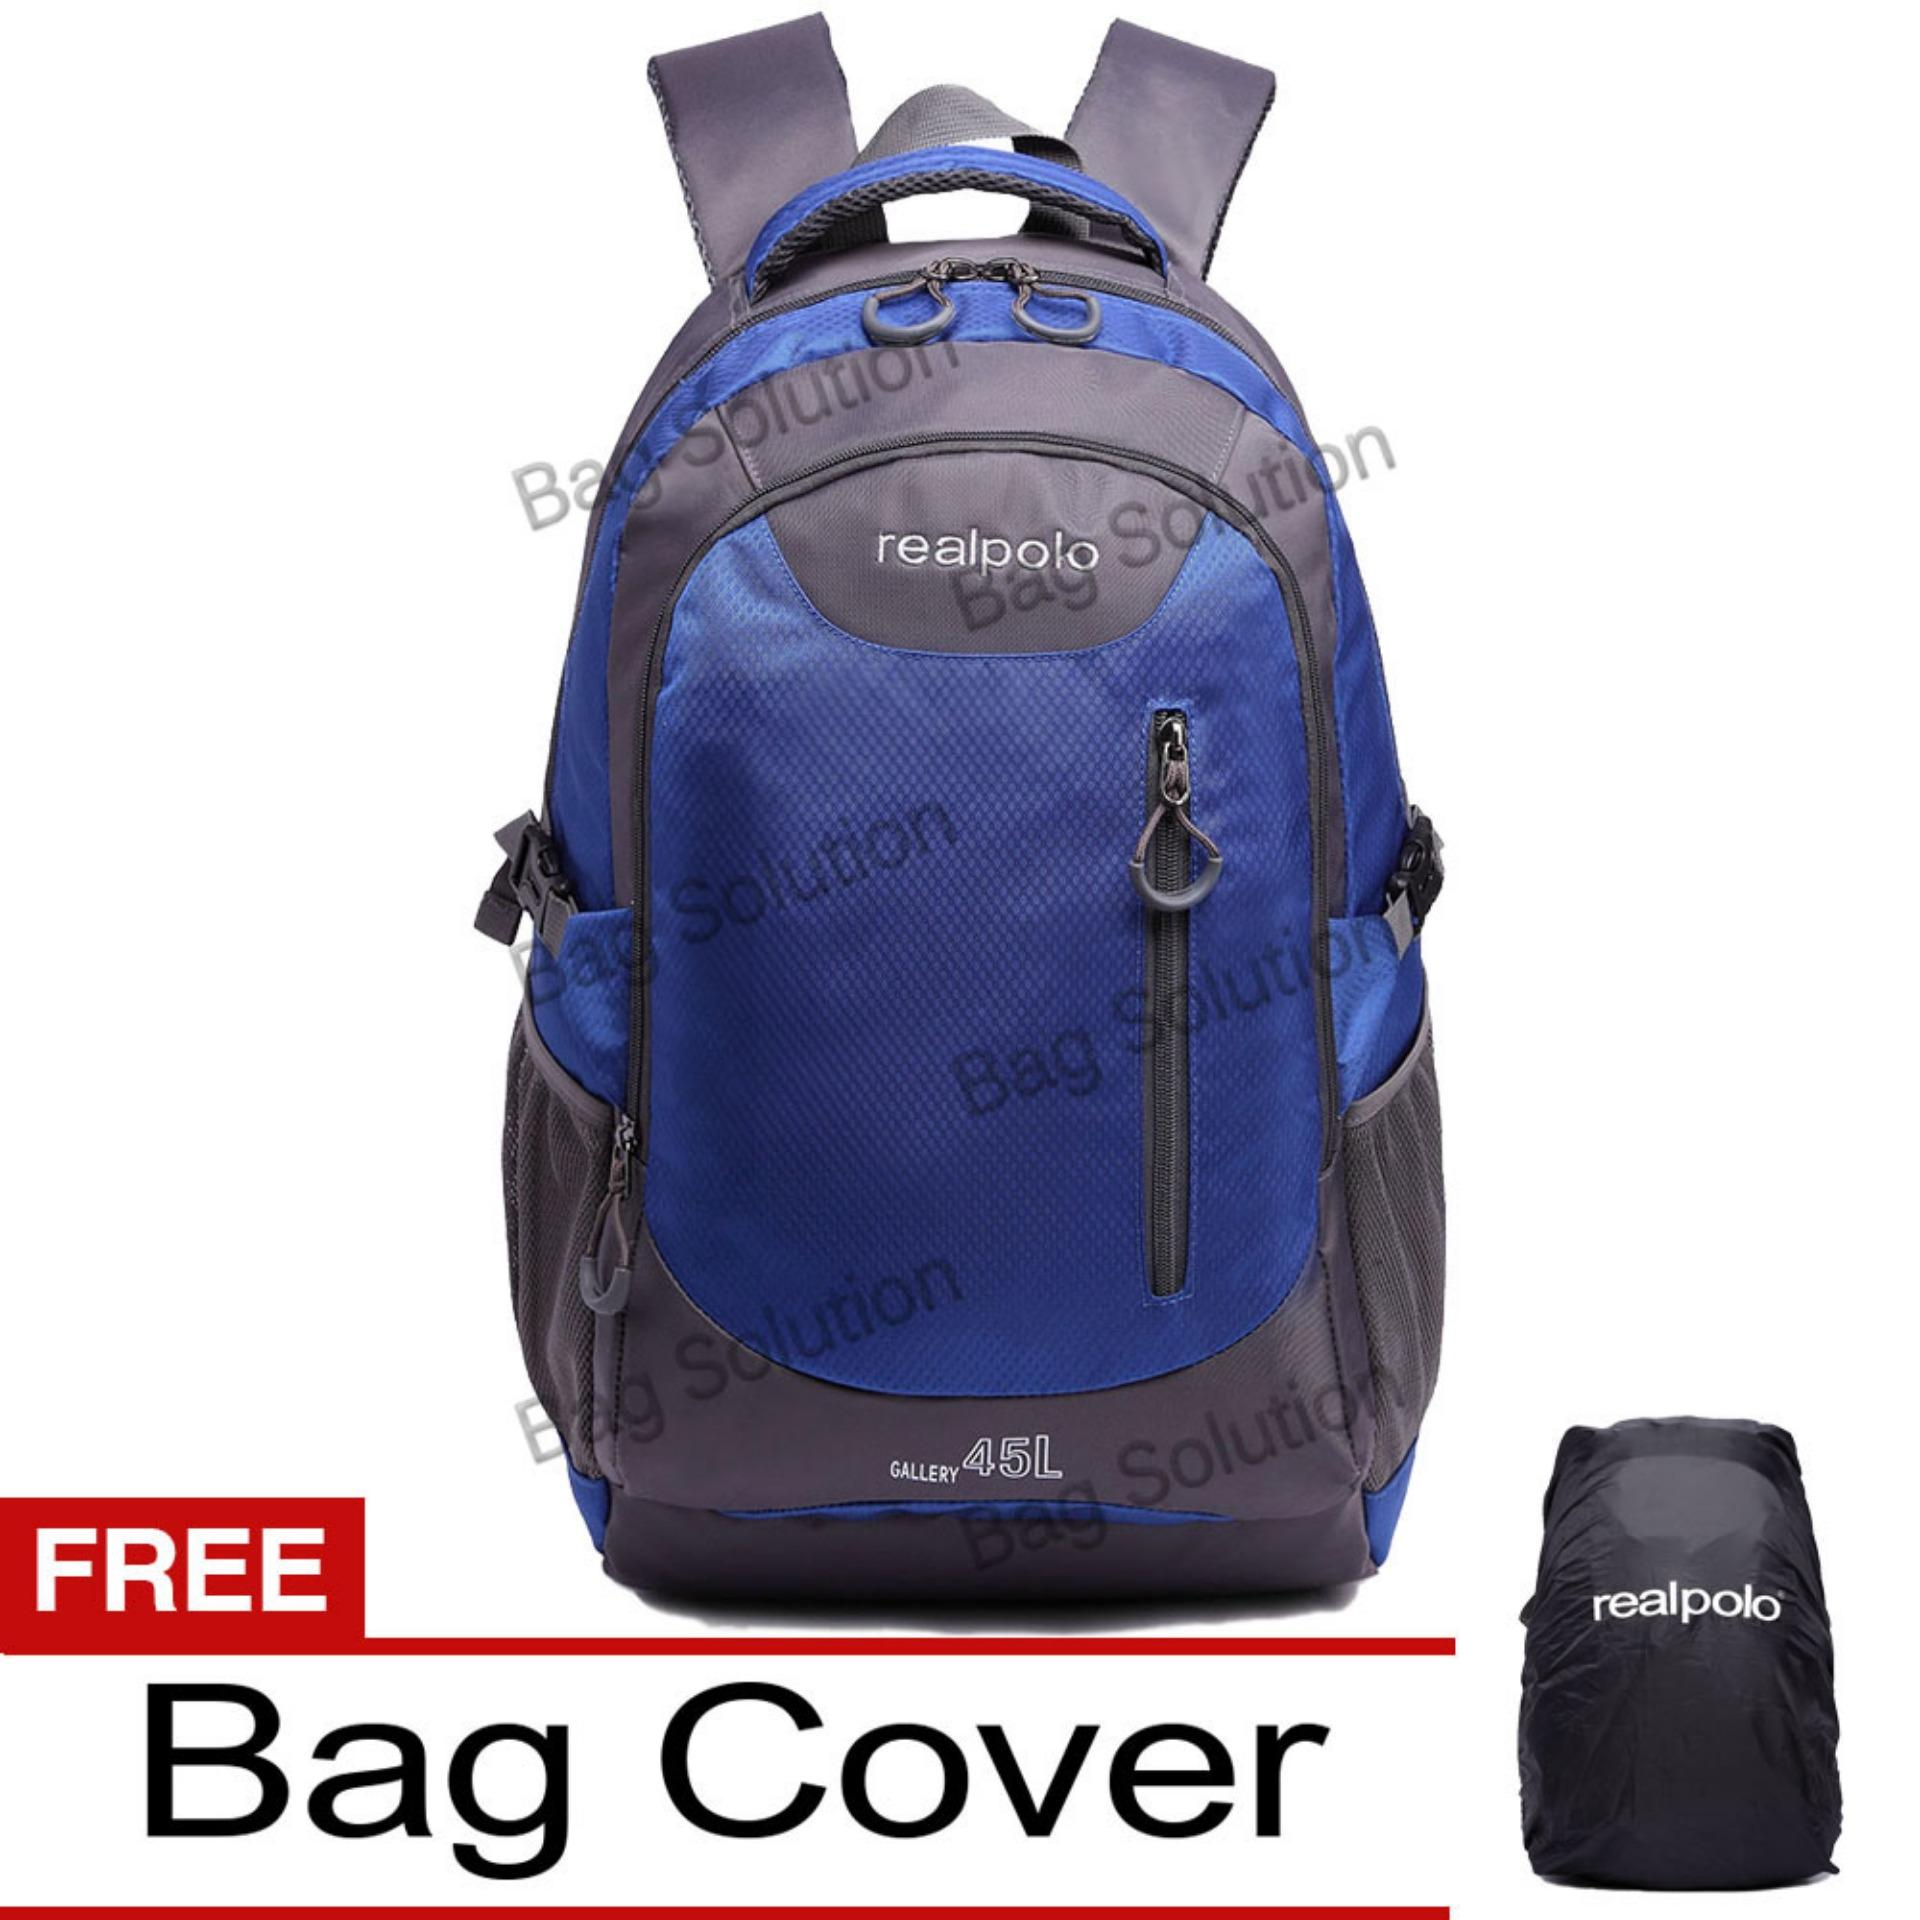 Jual Real Polo Tas Ransel Kasual Jumbo 6333 Backpack Xl Bonus Bag Cover Biru Antik